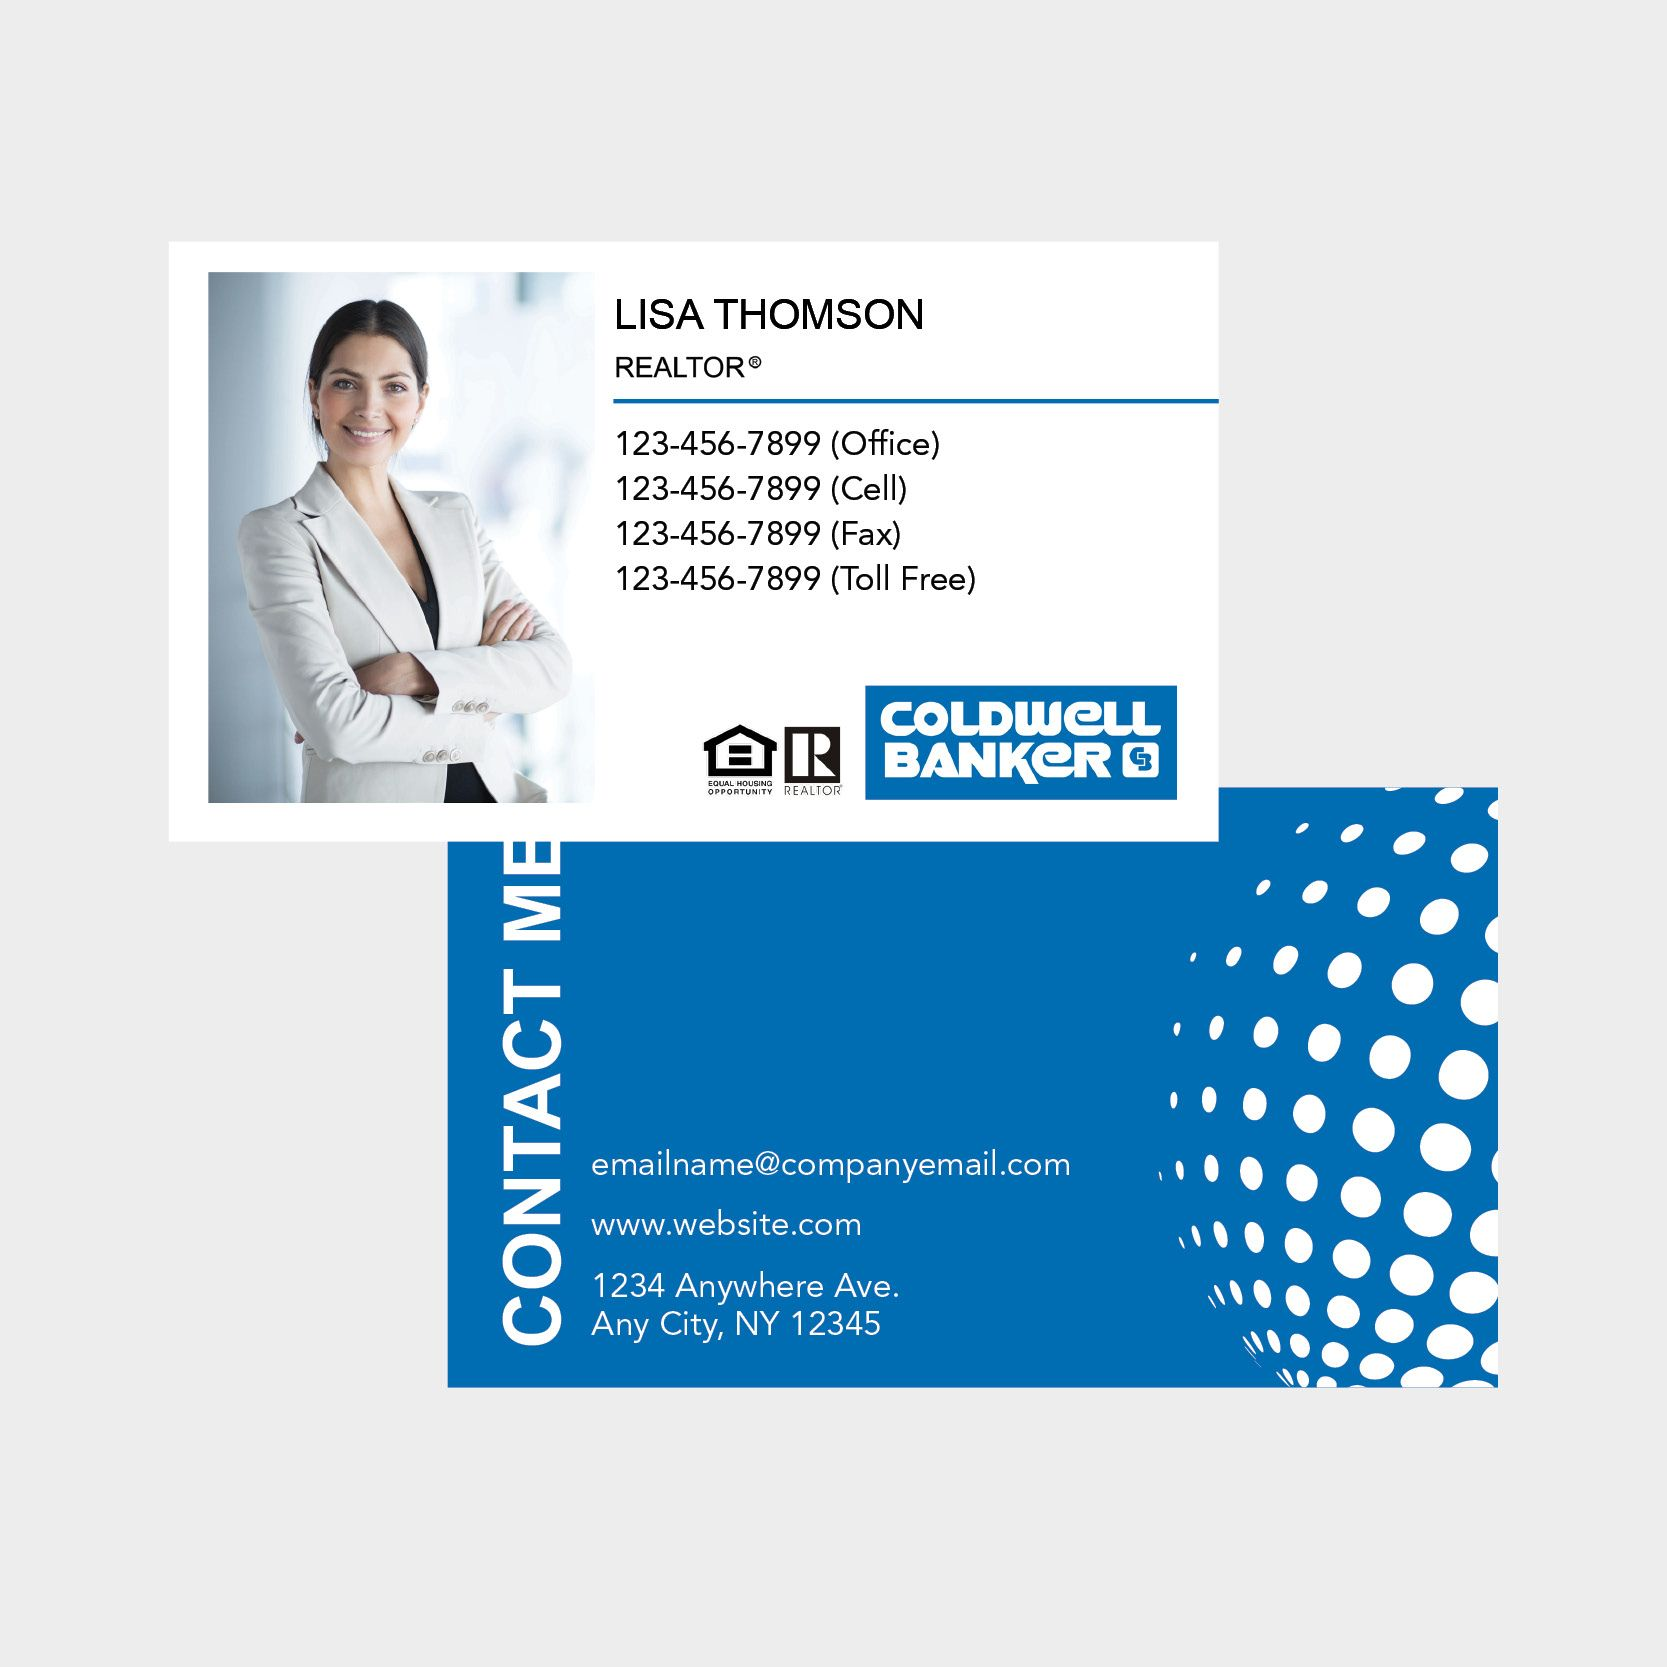 Coldwell Banker Business Cards Pertaining To Coldwell Banker Business Card Template Cumed Org Business Card Template Realtor Business Cards Business Template